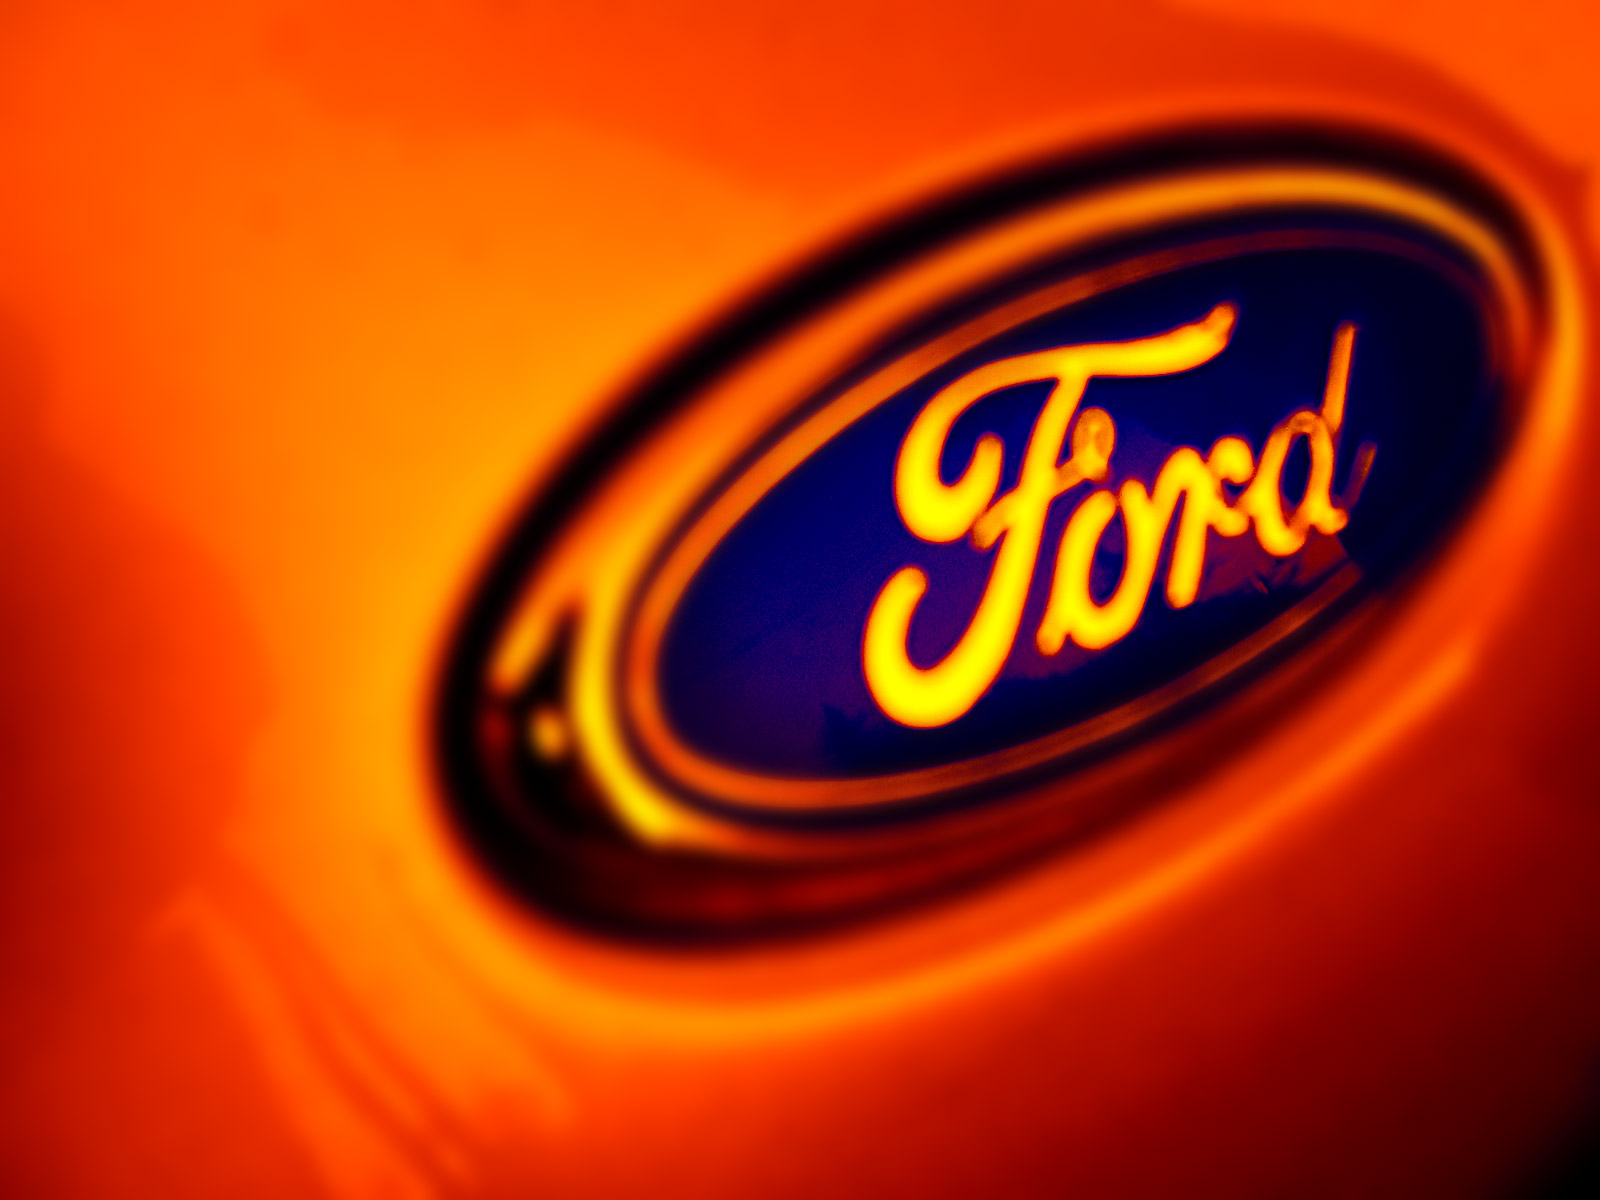 Ford Emblem Wallpaper Wallpapersafari